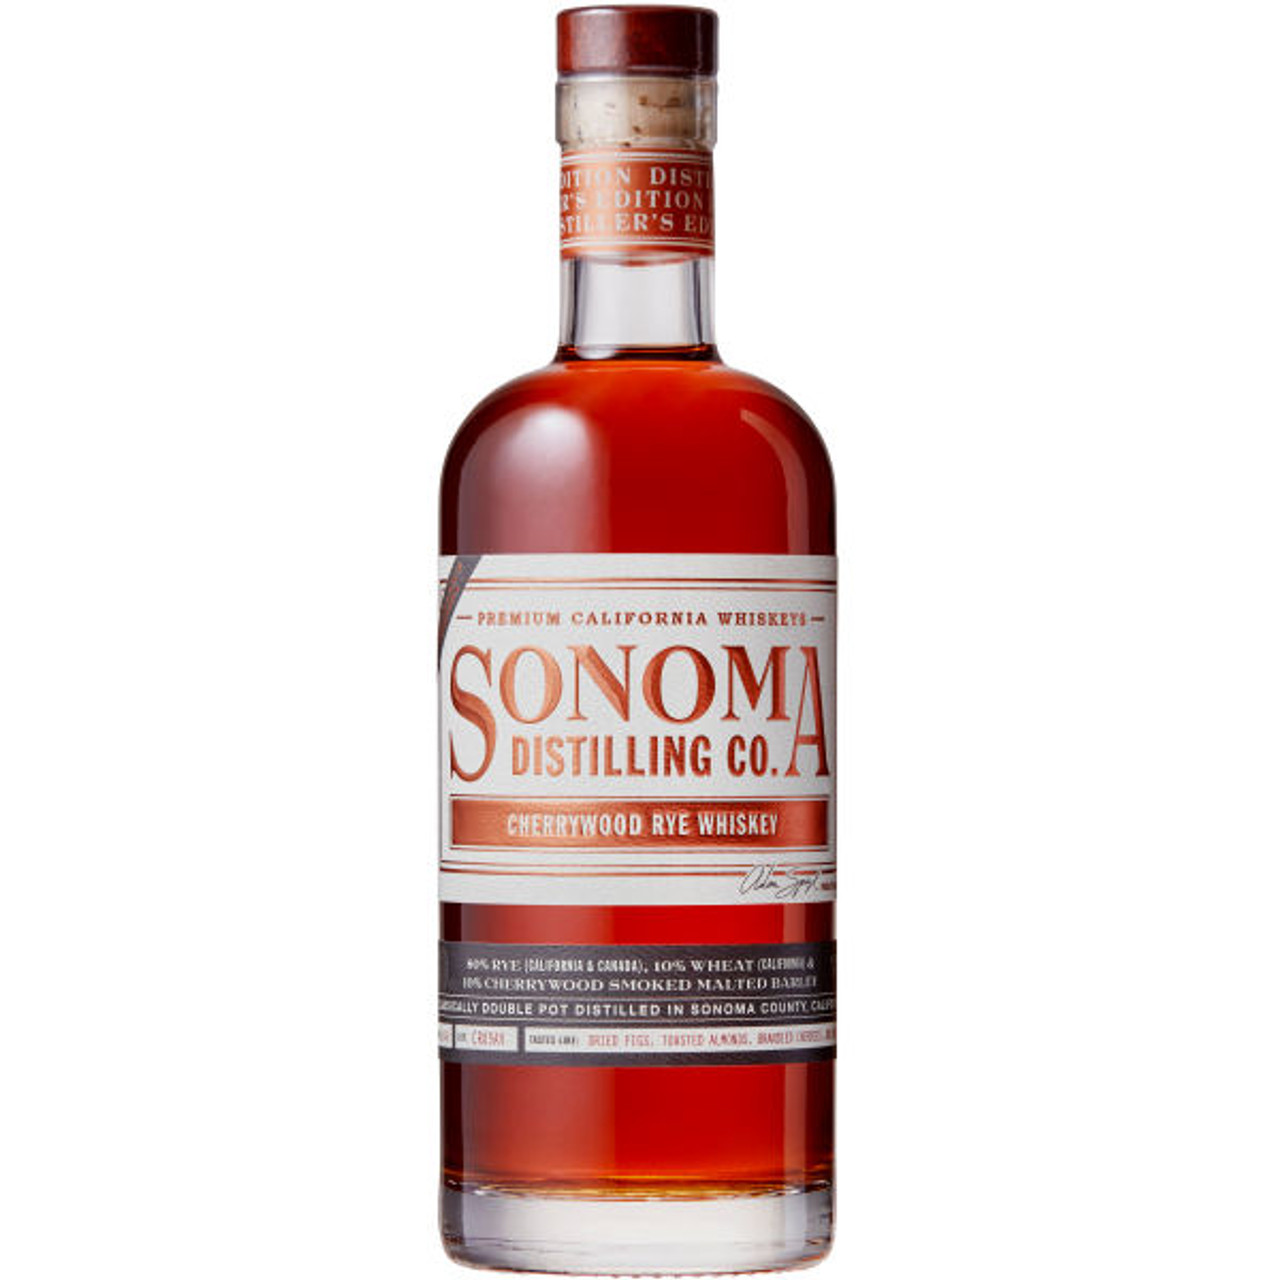 Sonoma Distilling Cherrywood Rye Whiskey 750ml